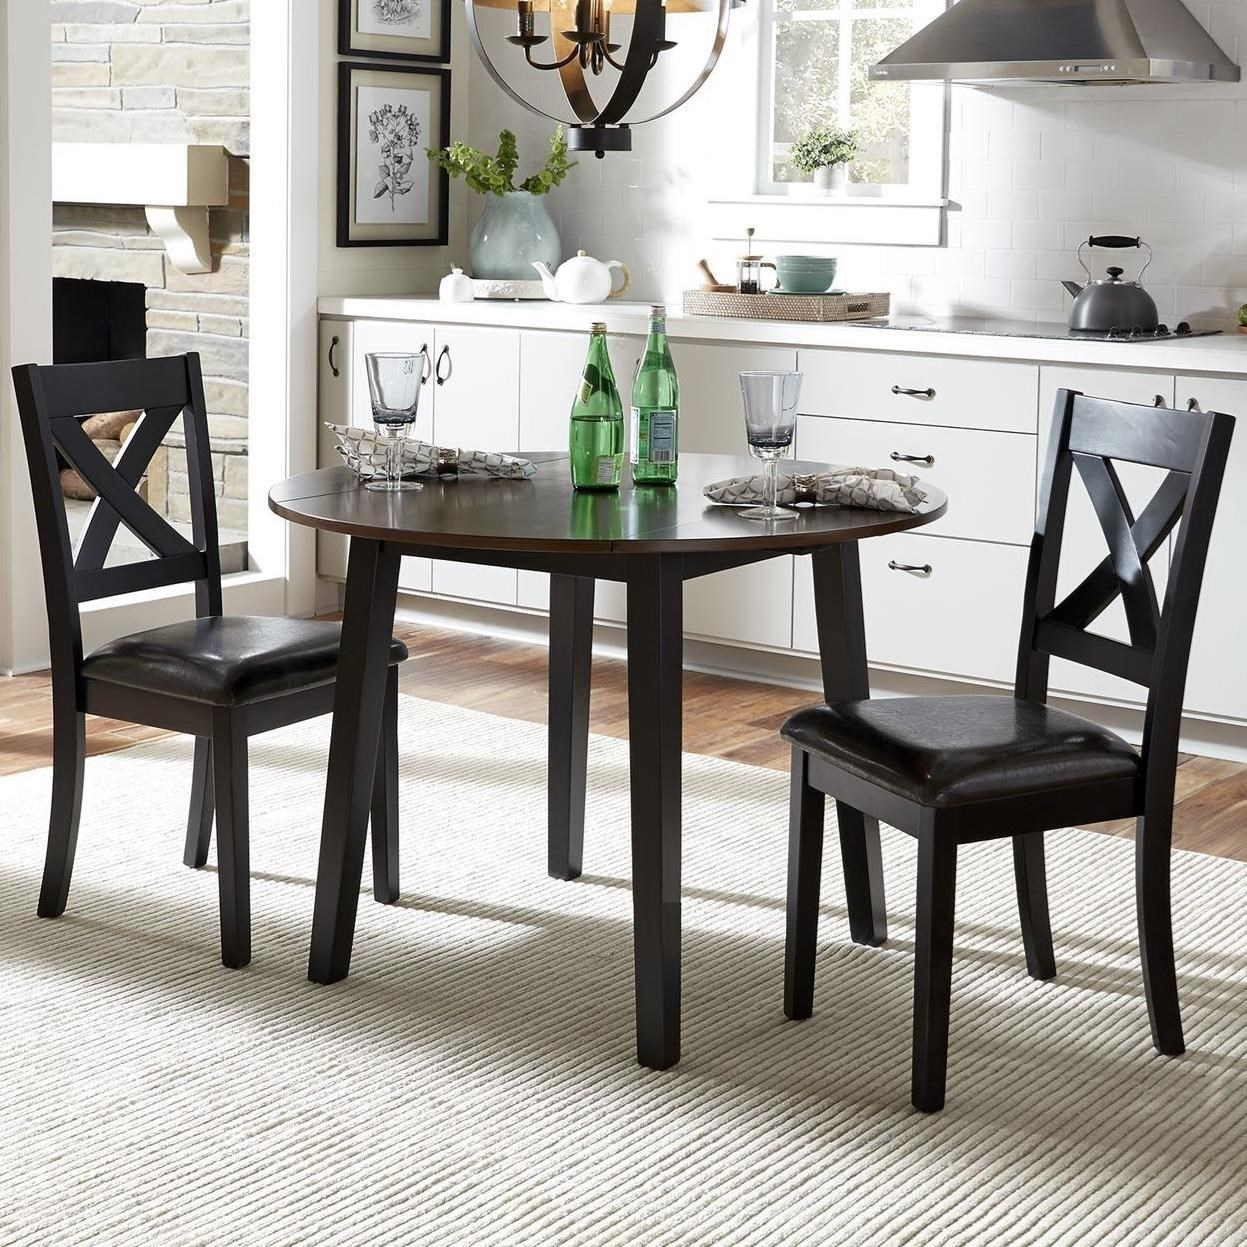 Thornton 3 Piece Drop Leaf Table Set by Libby at Walker's Furniture